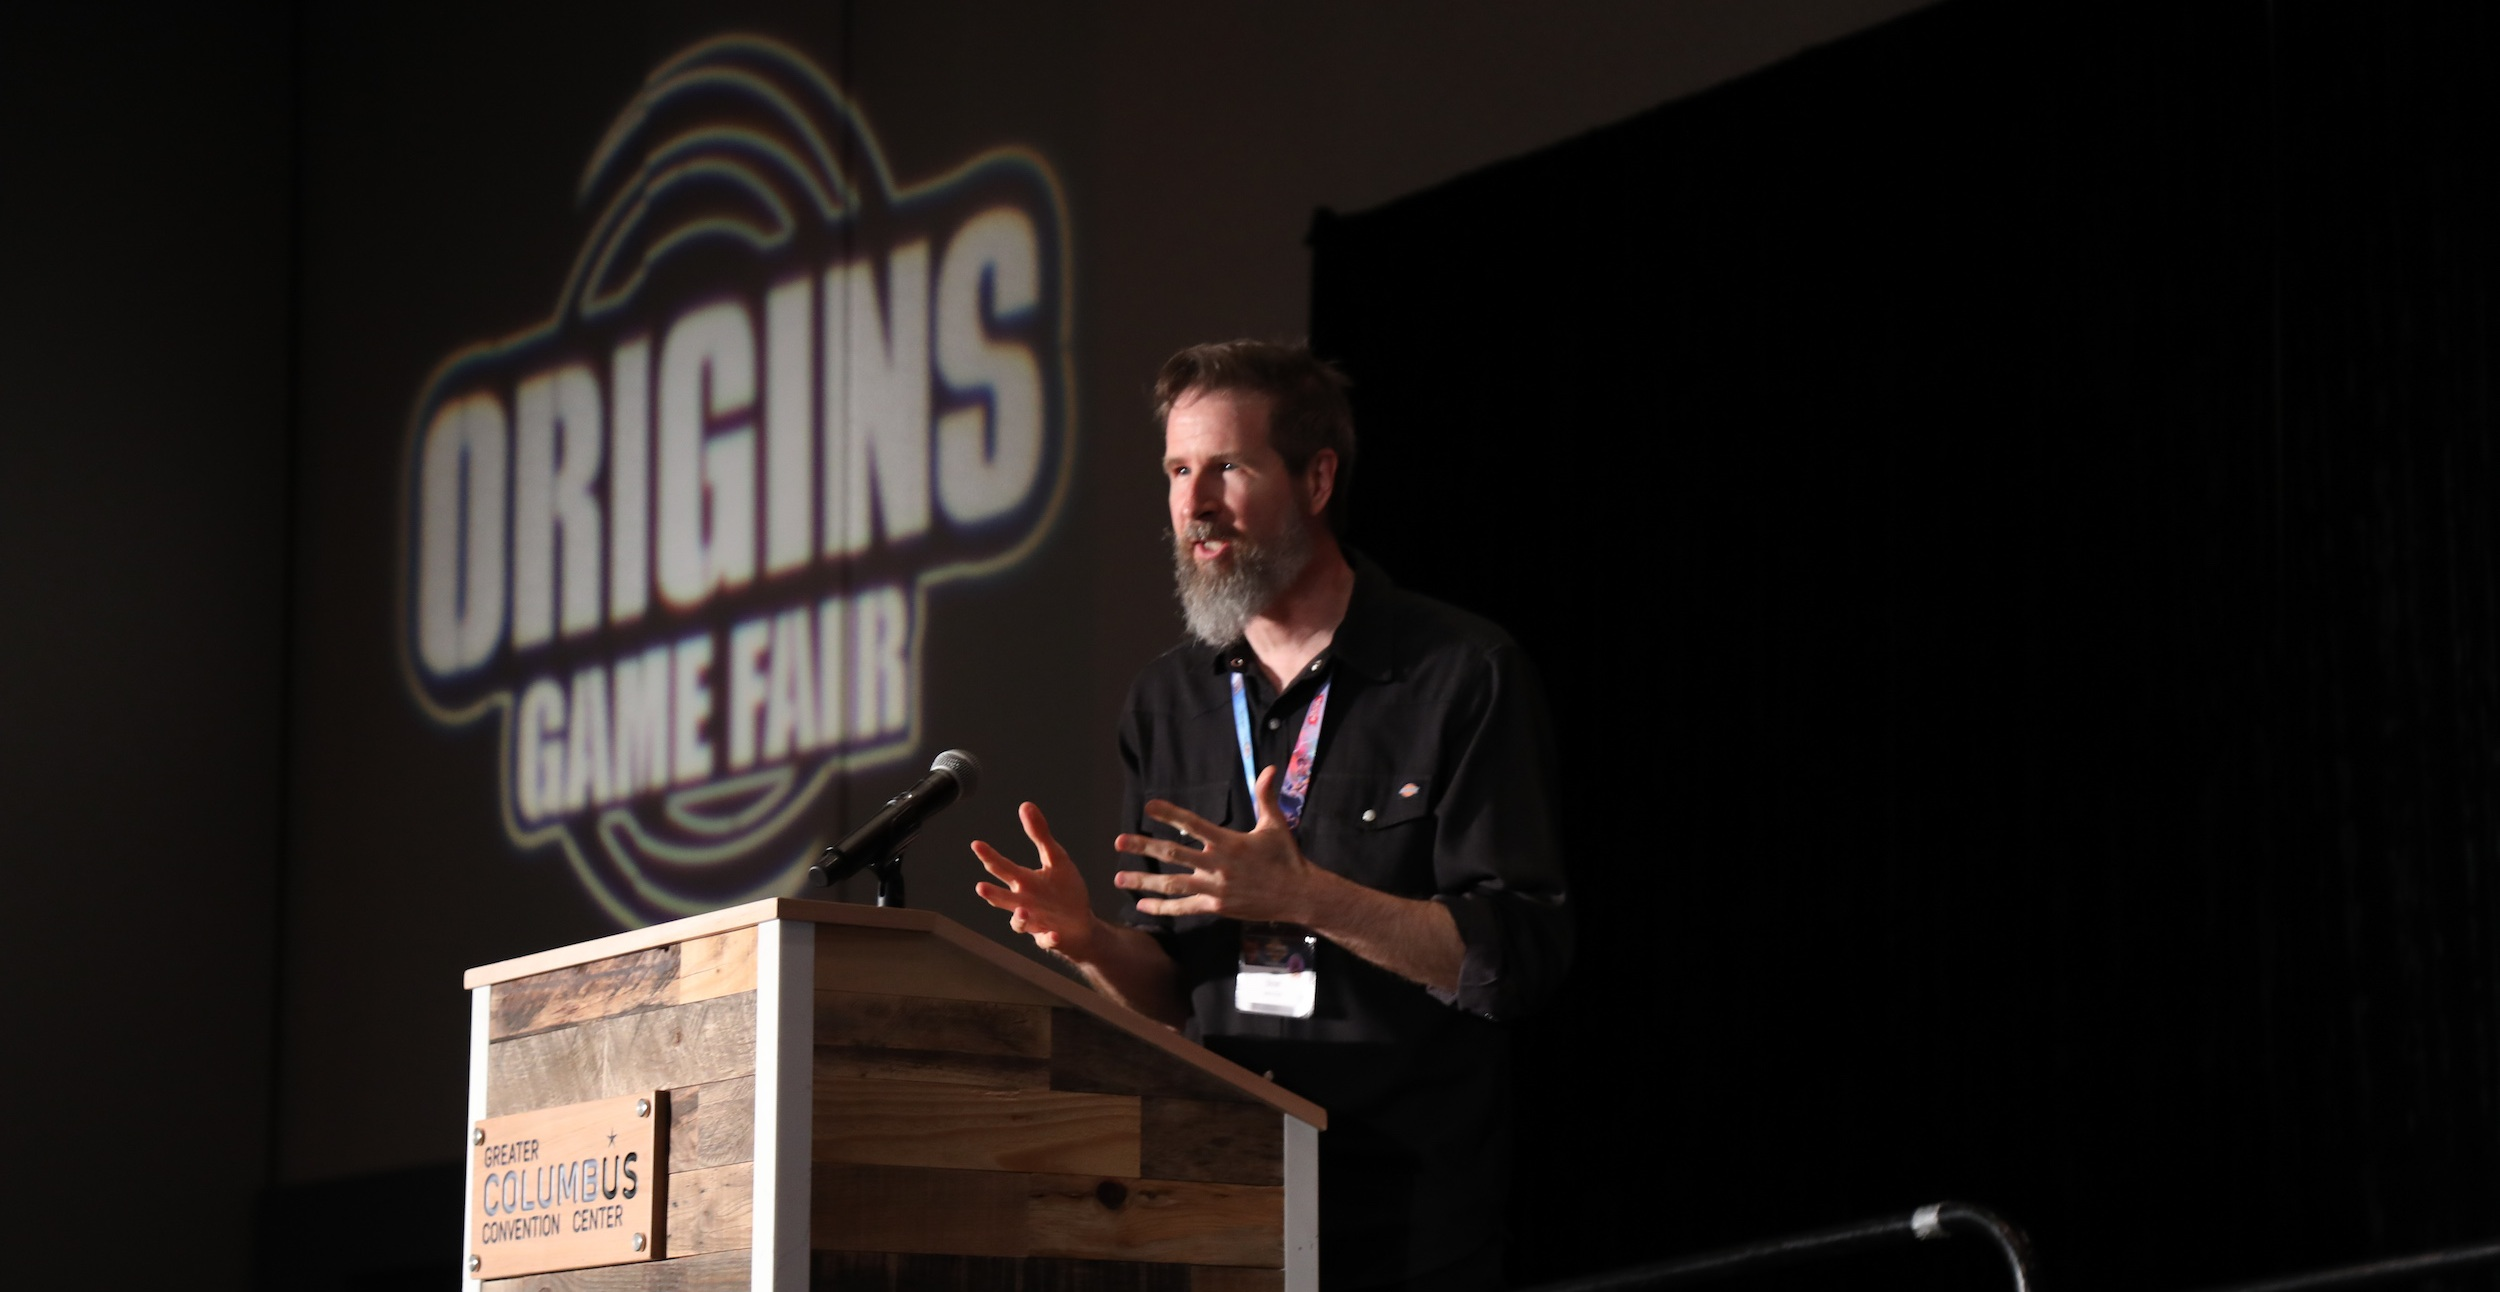 Artist BROM giving an acceptance speech during his induction into the Hall of Fame at Origins Game Fair 2019.